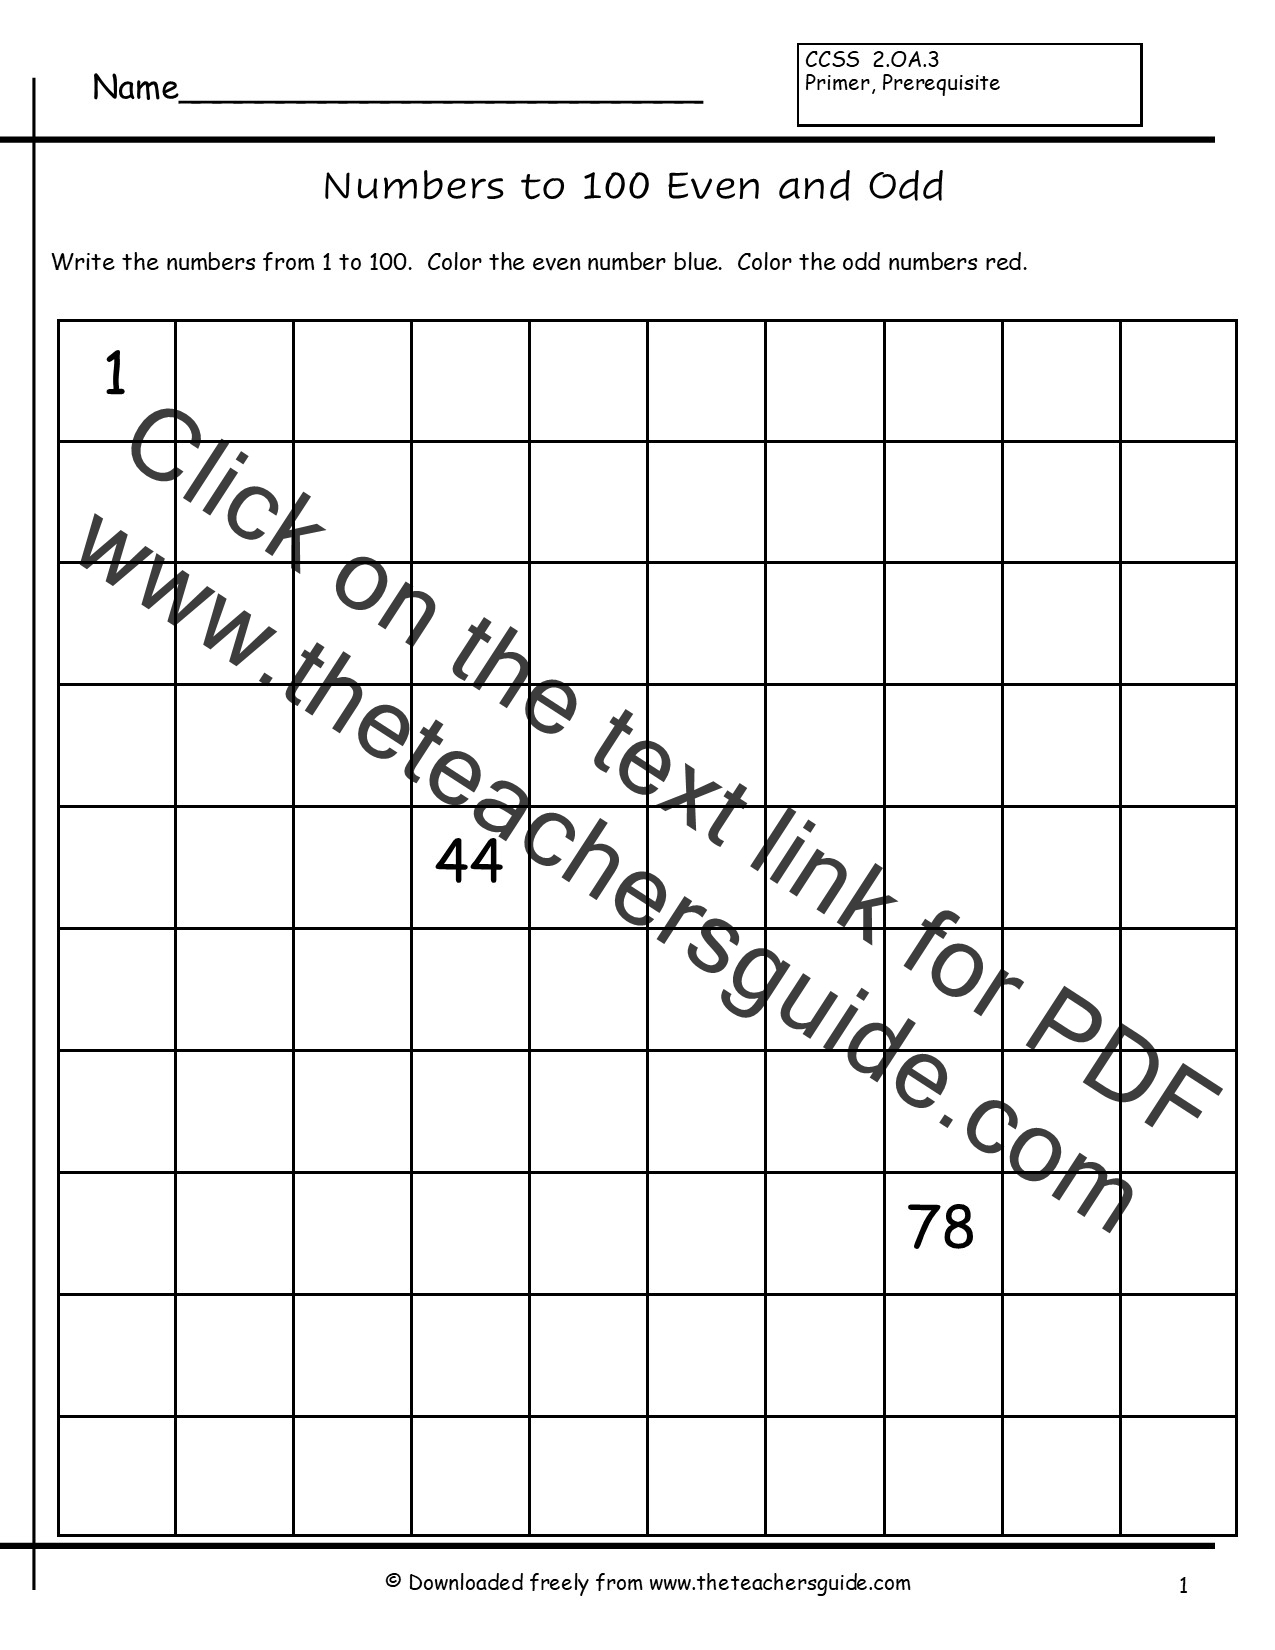 Odd Numbers 1 To 100 Worksheet Students Write Numbers From 1 To 100 Images